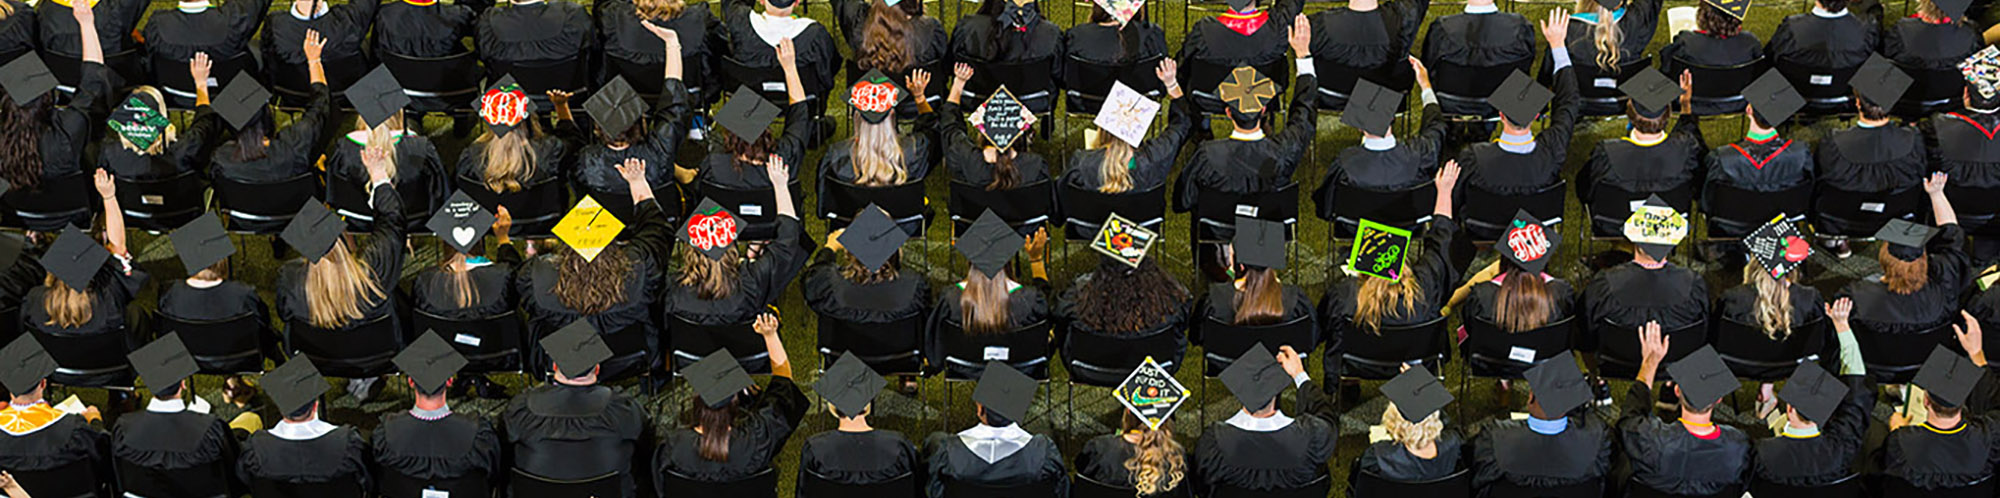 students showing off their decorated graduation caps at spring commencement